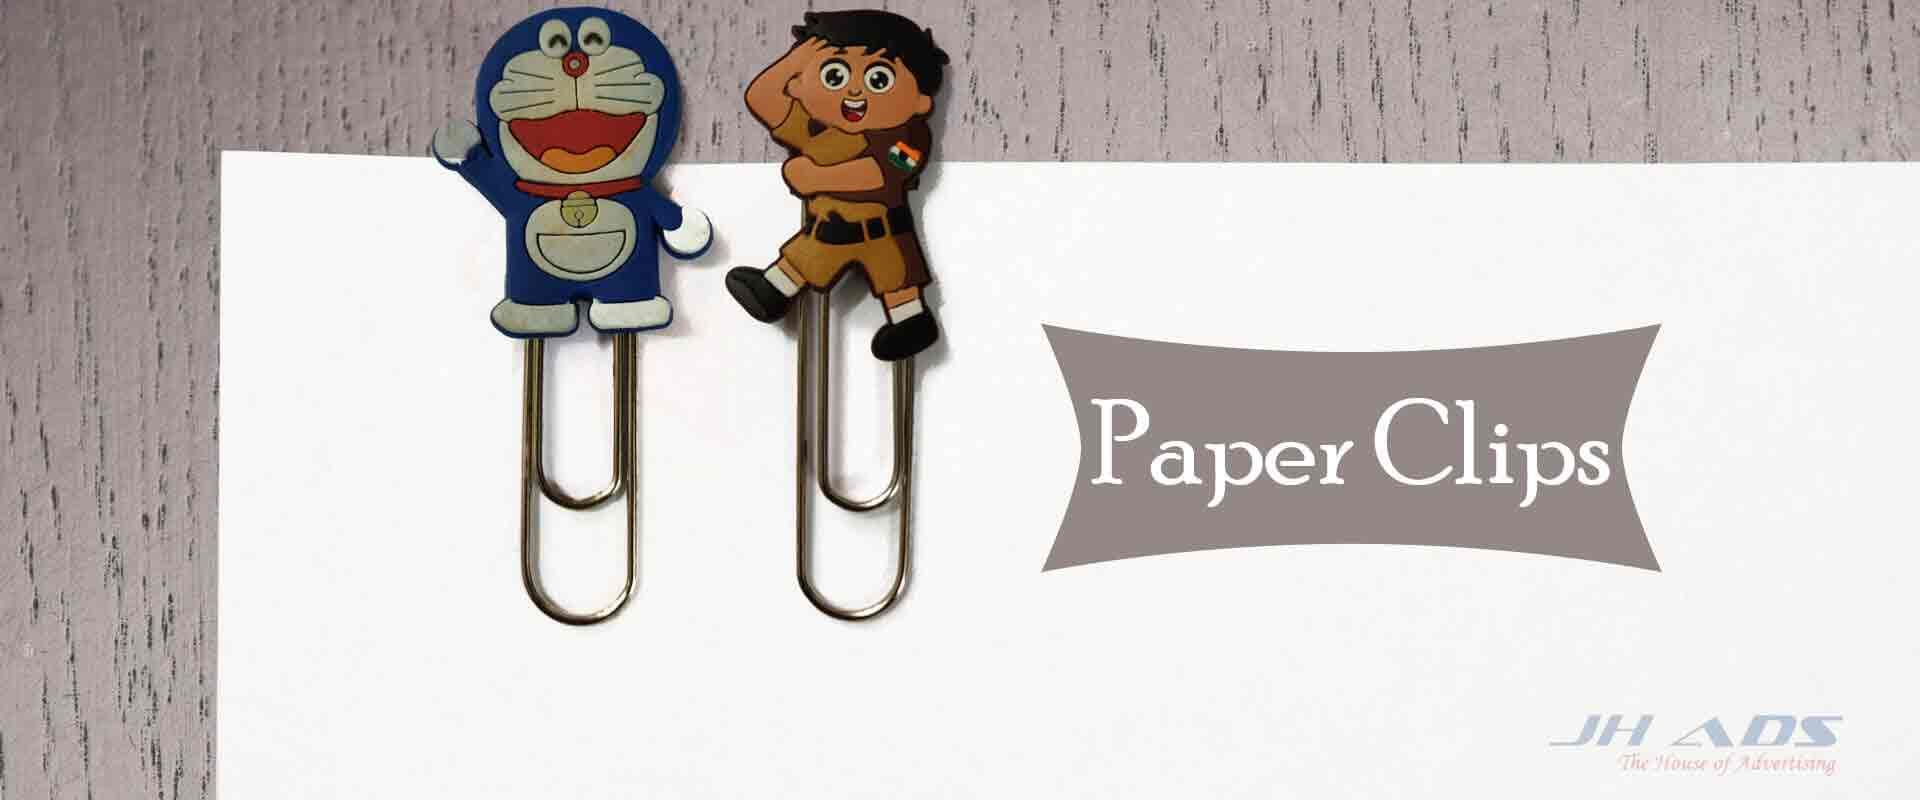 Paper Clips In Beed